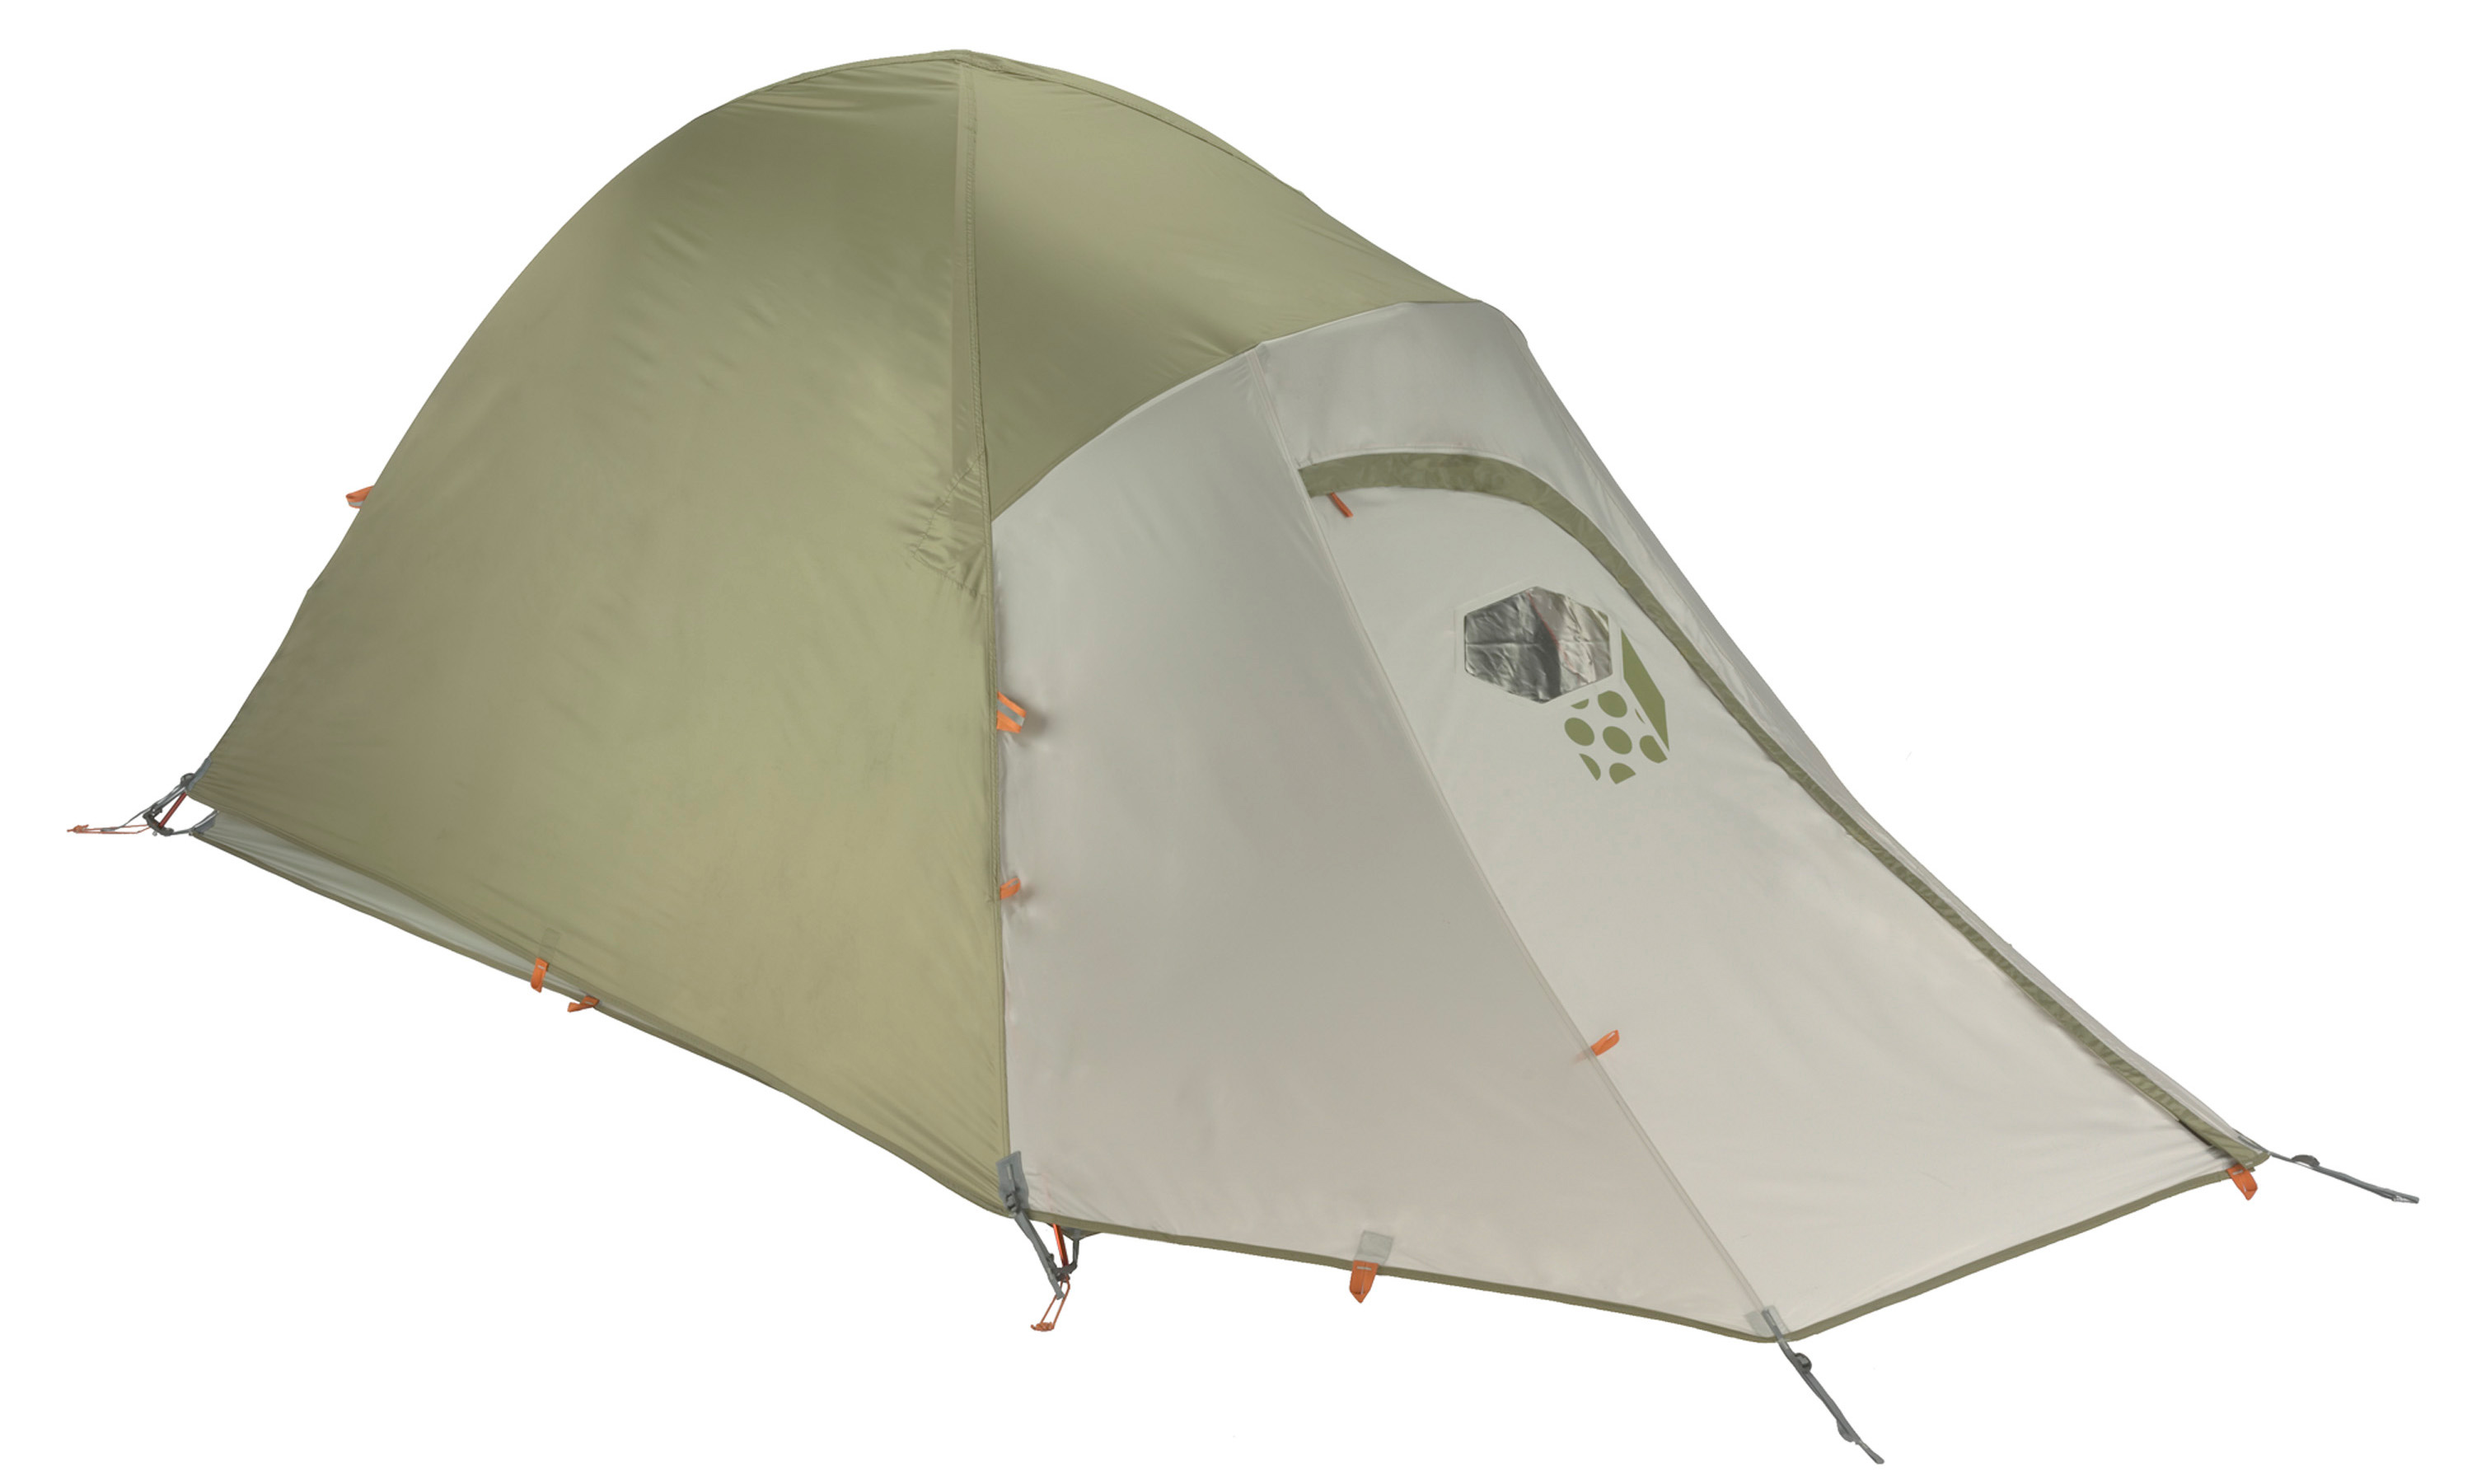 "Camp and Hike Light Wedge tents are simple backpacking tents for two or three. Featuring Mountain Hardwear's patented tension shelf for strength and storage, the 70D nylon and mesh canopy has a single, D-shaped door, two mesh ceiling vents and one rear vent. DAC poles are strong and light. Guaranteed watertight construction. Superlight option: pitch with fly and Pitch Light footprint to shave pounds. Footprint sold separately.Industry leading DAC Press fit poles Guaranteed watertight construction with fully taped fly, taped perimeter seam, welded corners and welded guy clip anchors. Rain room tested with 1200"" of rain in 24 hours Proprietary Evolution Tension Arch stabilizes tent using fewer poles 2-pole wedge design is lightweight and roomy Large dry entry vestibule with a strong aluminum brow pole provides ample head room Tension Shelf provides strength, support for vestibule pole, and 3-D storage Full-size mesh door with dual slider zipper for easy entry and ventilation Reflective guy-out loops, starter points and zipper pulls for easy set-up at night Superlight 1/4"" buckles and webbing reduce tent weight Color coded pole loops for easy set up Pitch Light configuration allows user to set up a superlight shelter using only the tent fly, poles and footprint (sold separately  Our popular Light Wedge tents have a proven simple design for backpacking and camping Capacity: 3 Minimum Weight: 5 lb 10 oz/ 2.55kg Packed Weight: 6 lb 5 oz/ 2.85kg Tent Floor: 70D Nylon Taffeta 3,000mm PU Poles: DAC Press fit poles Canopy: 20D Nylon Knit Mesh; 68D Polyester Ripstop DWR Reinforcement: 68D Polyester Ripstop, DWR,  Fly: 75D Polyester Taffeta 1,500mm PU Floor Area: 44 sq ft/ 4.1m2 Number Of Doors: 1 Number Of Poles: 2 Number Of Vestibules: 1 Interior Height: 47""/ 119cm Packed Diameter: 7 in/ 19cm Packed Length: 21 in/ 53cm Pitch Light Weight: 4 lb 7 oz/ 2.02kg - $263.95"